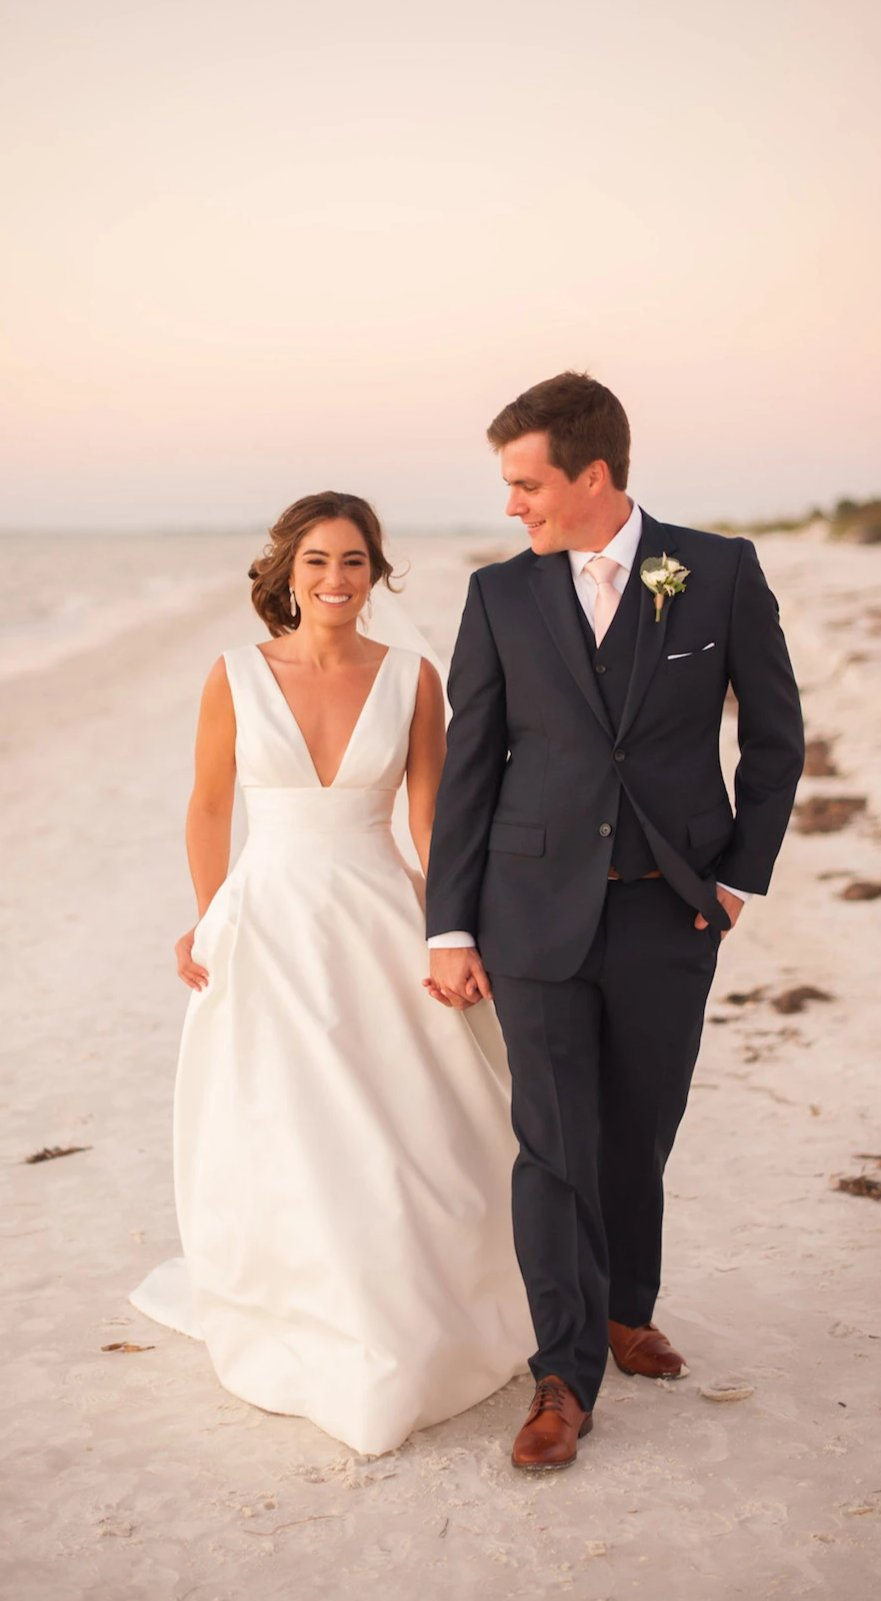 Simple V-neckline Beach Wedding Dress - daisystyledress